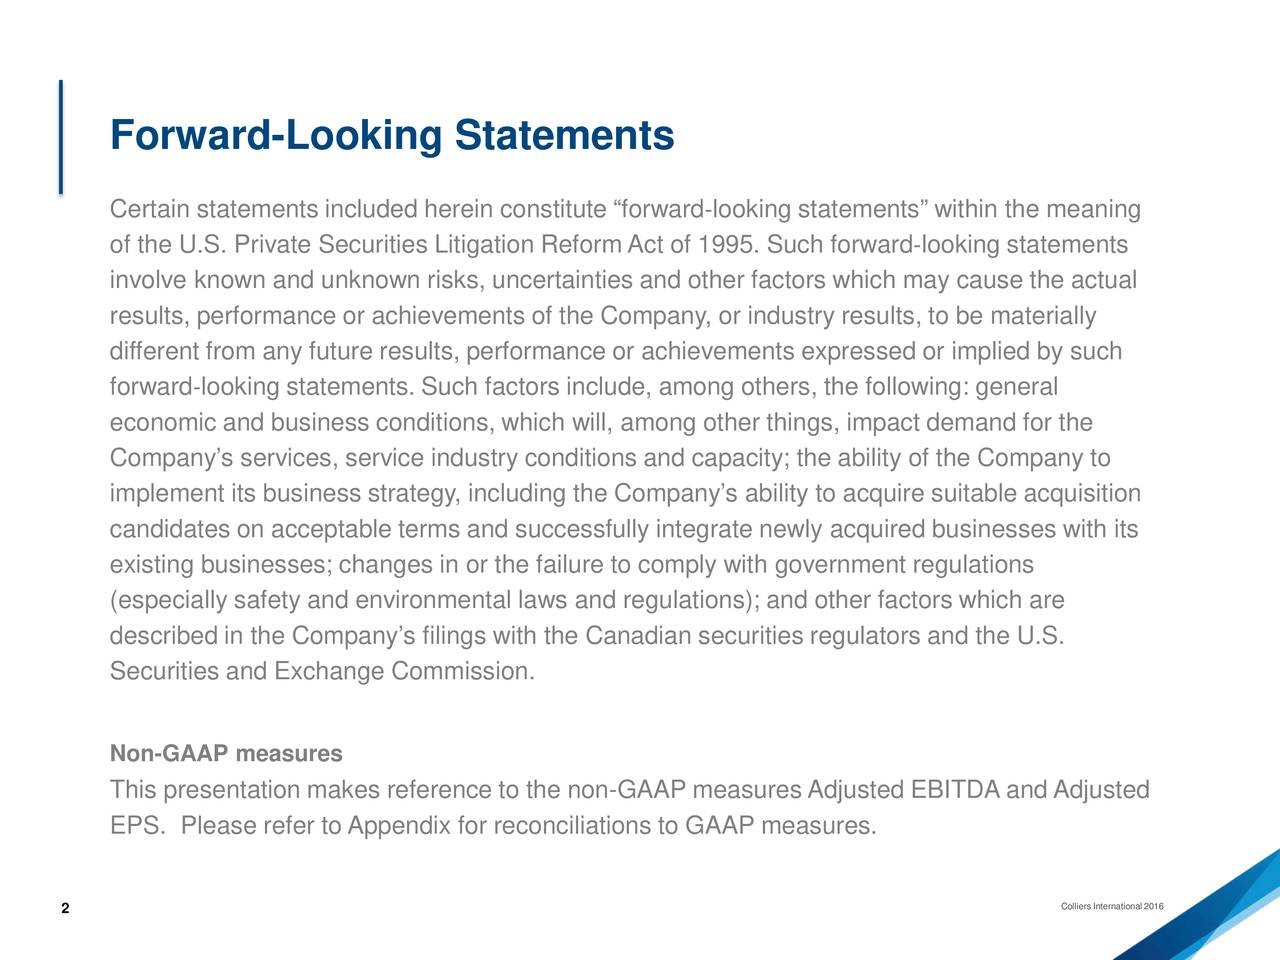 Certain statements included herein constitute forwardlooking statements within the meaning of the U.S. Private Securities Litigation Reform Act of 1995. Such forwardlooking statements involve known and unknown risks, uncertainties and other factors which may cause the actual results, performance or achievements of the Company, or industry results, to be materially different from any future results, performance or achievements expressed or implied by such forwardlooking statements. Such factors include, among others, the following: general economic and business conditions, which will, among other things, impact demand for the Companys services, service industry conditions and capacity; the ability of the Company to implement its business strategy, including the Companys ability toacquire suitable acquisition candidates on acceptable terms and successfully integrate newlyacquired businesses with its existing businesses; changes in or the failure to comply with government regulations (especially safety and environmental laws and regulations); and other factors which are described in the Companys filings with the Canadian securities regulators and the U.S. Securities and Exchange Commission. Non-GAAP measures This presentation makes reference to the non-GAAP measures Adjusted EBITDA and Adjusted EPS. Please refer to Appendix for reconciliations to GAAP measures. 2 Colliers International 2016